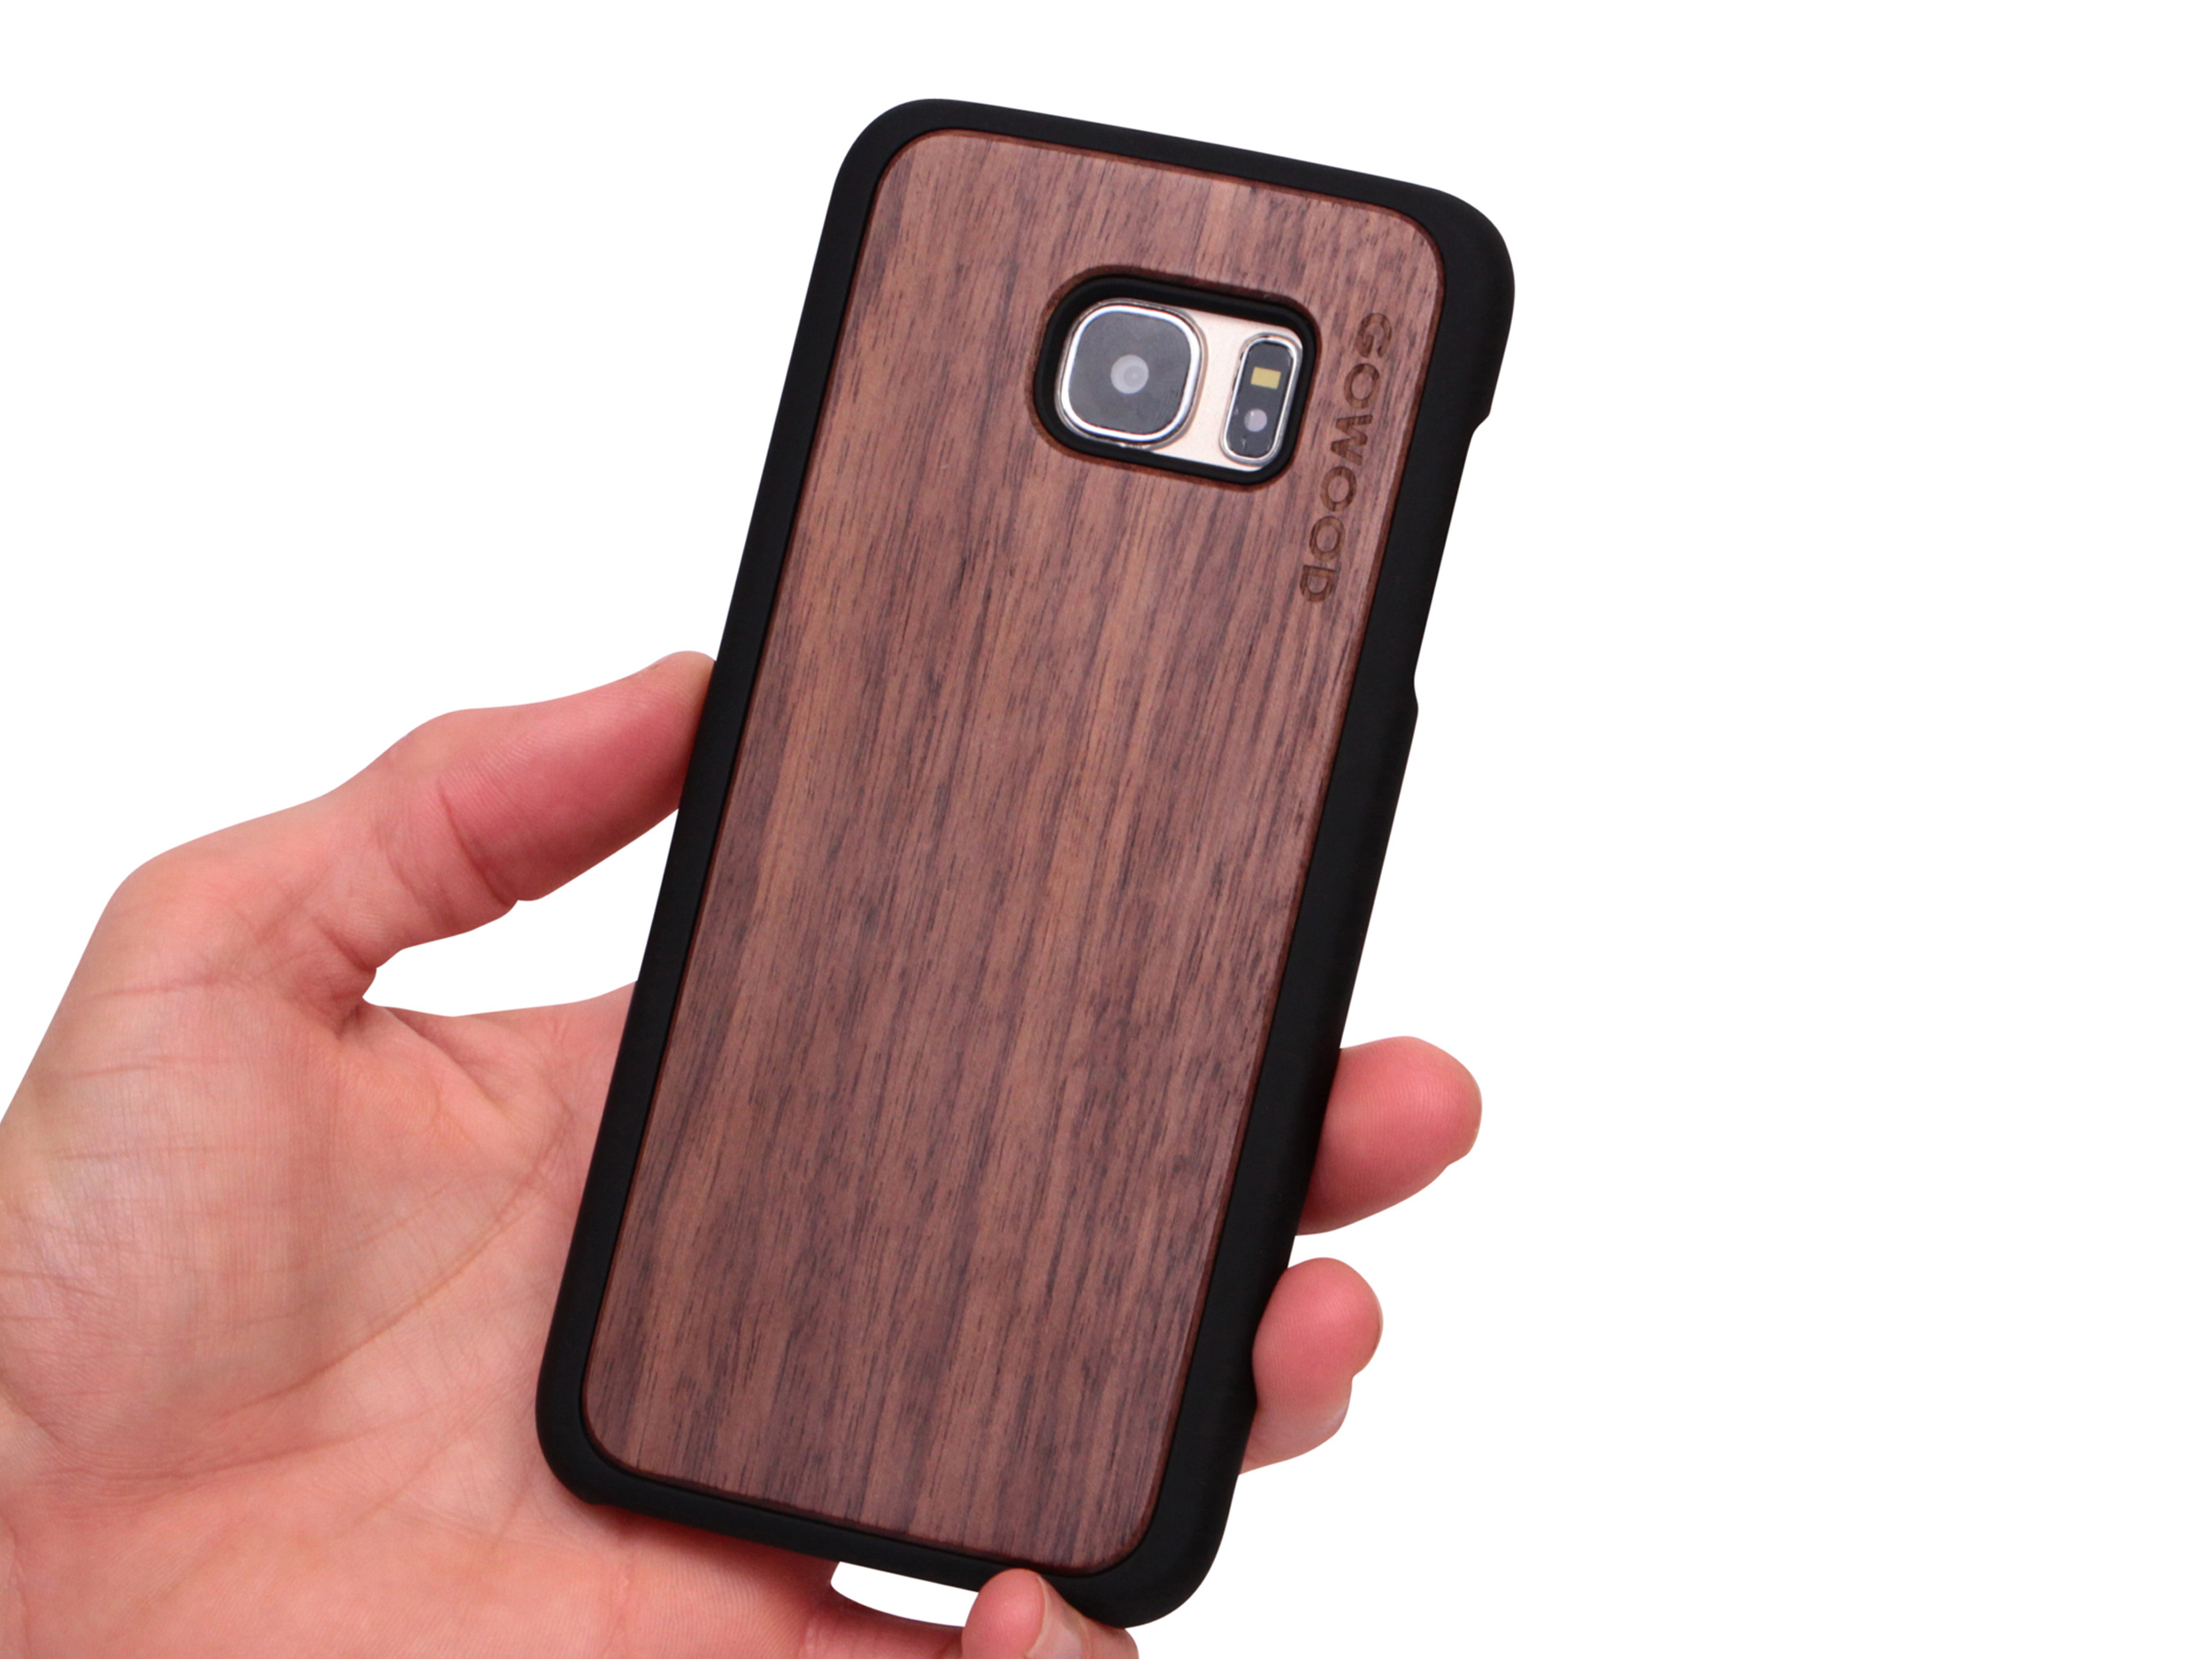 Samsung Galaxy S7 Edge wood case walnut user 1